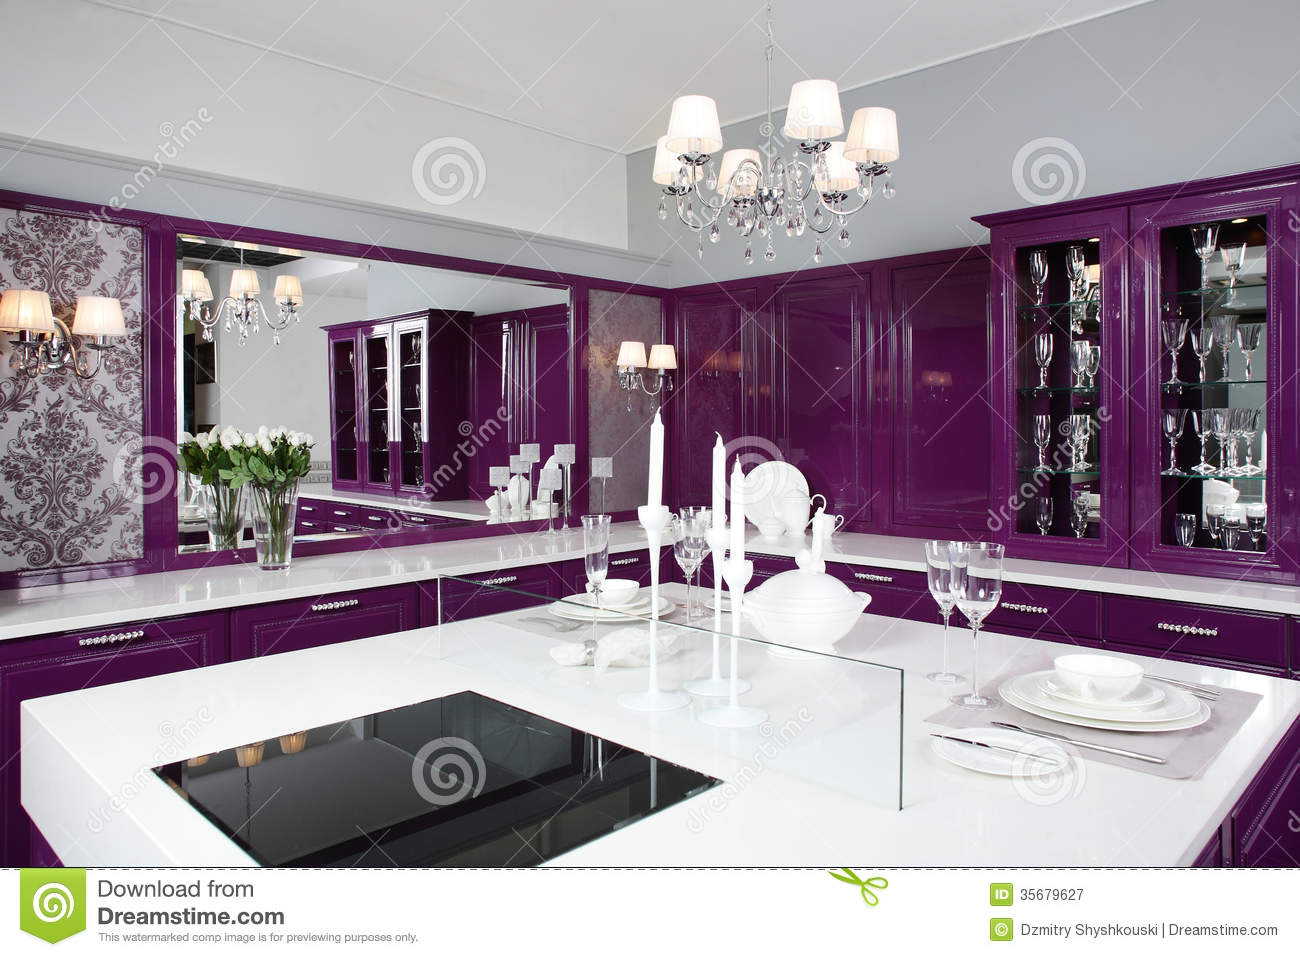 Modern Purple Kitchen With Stylish Furniture Royalty Free